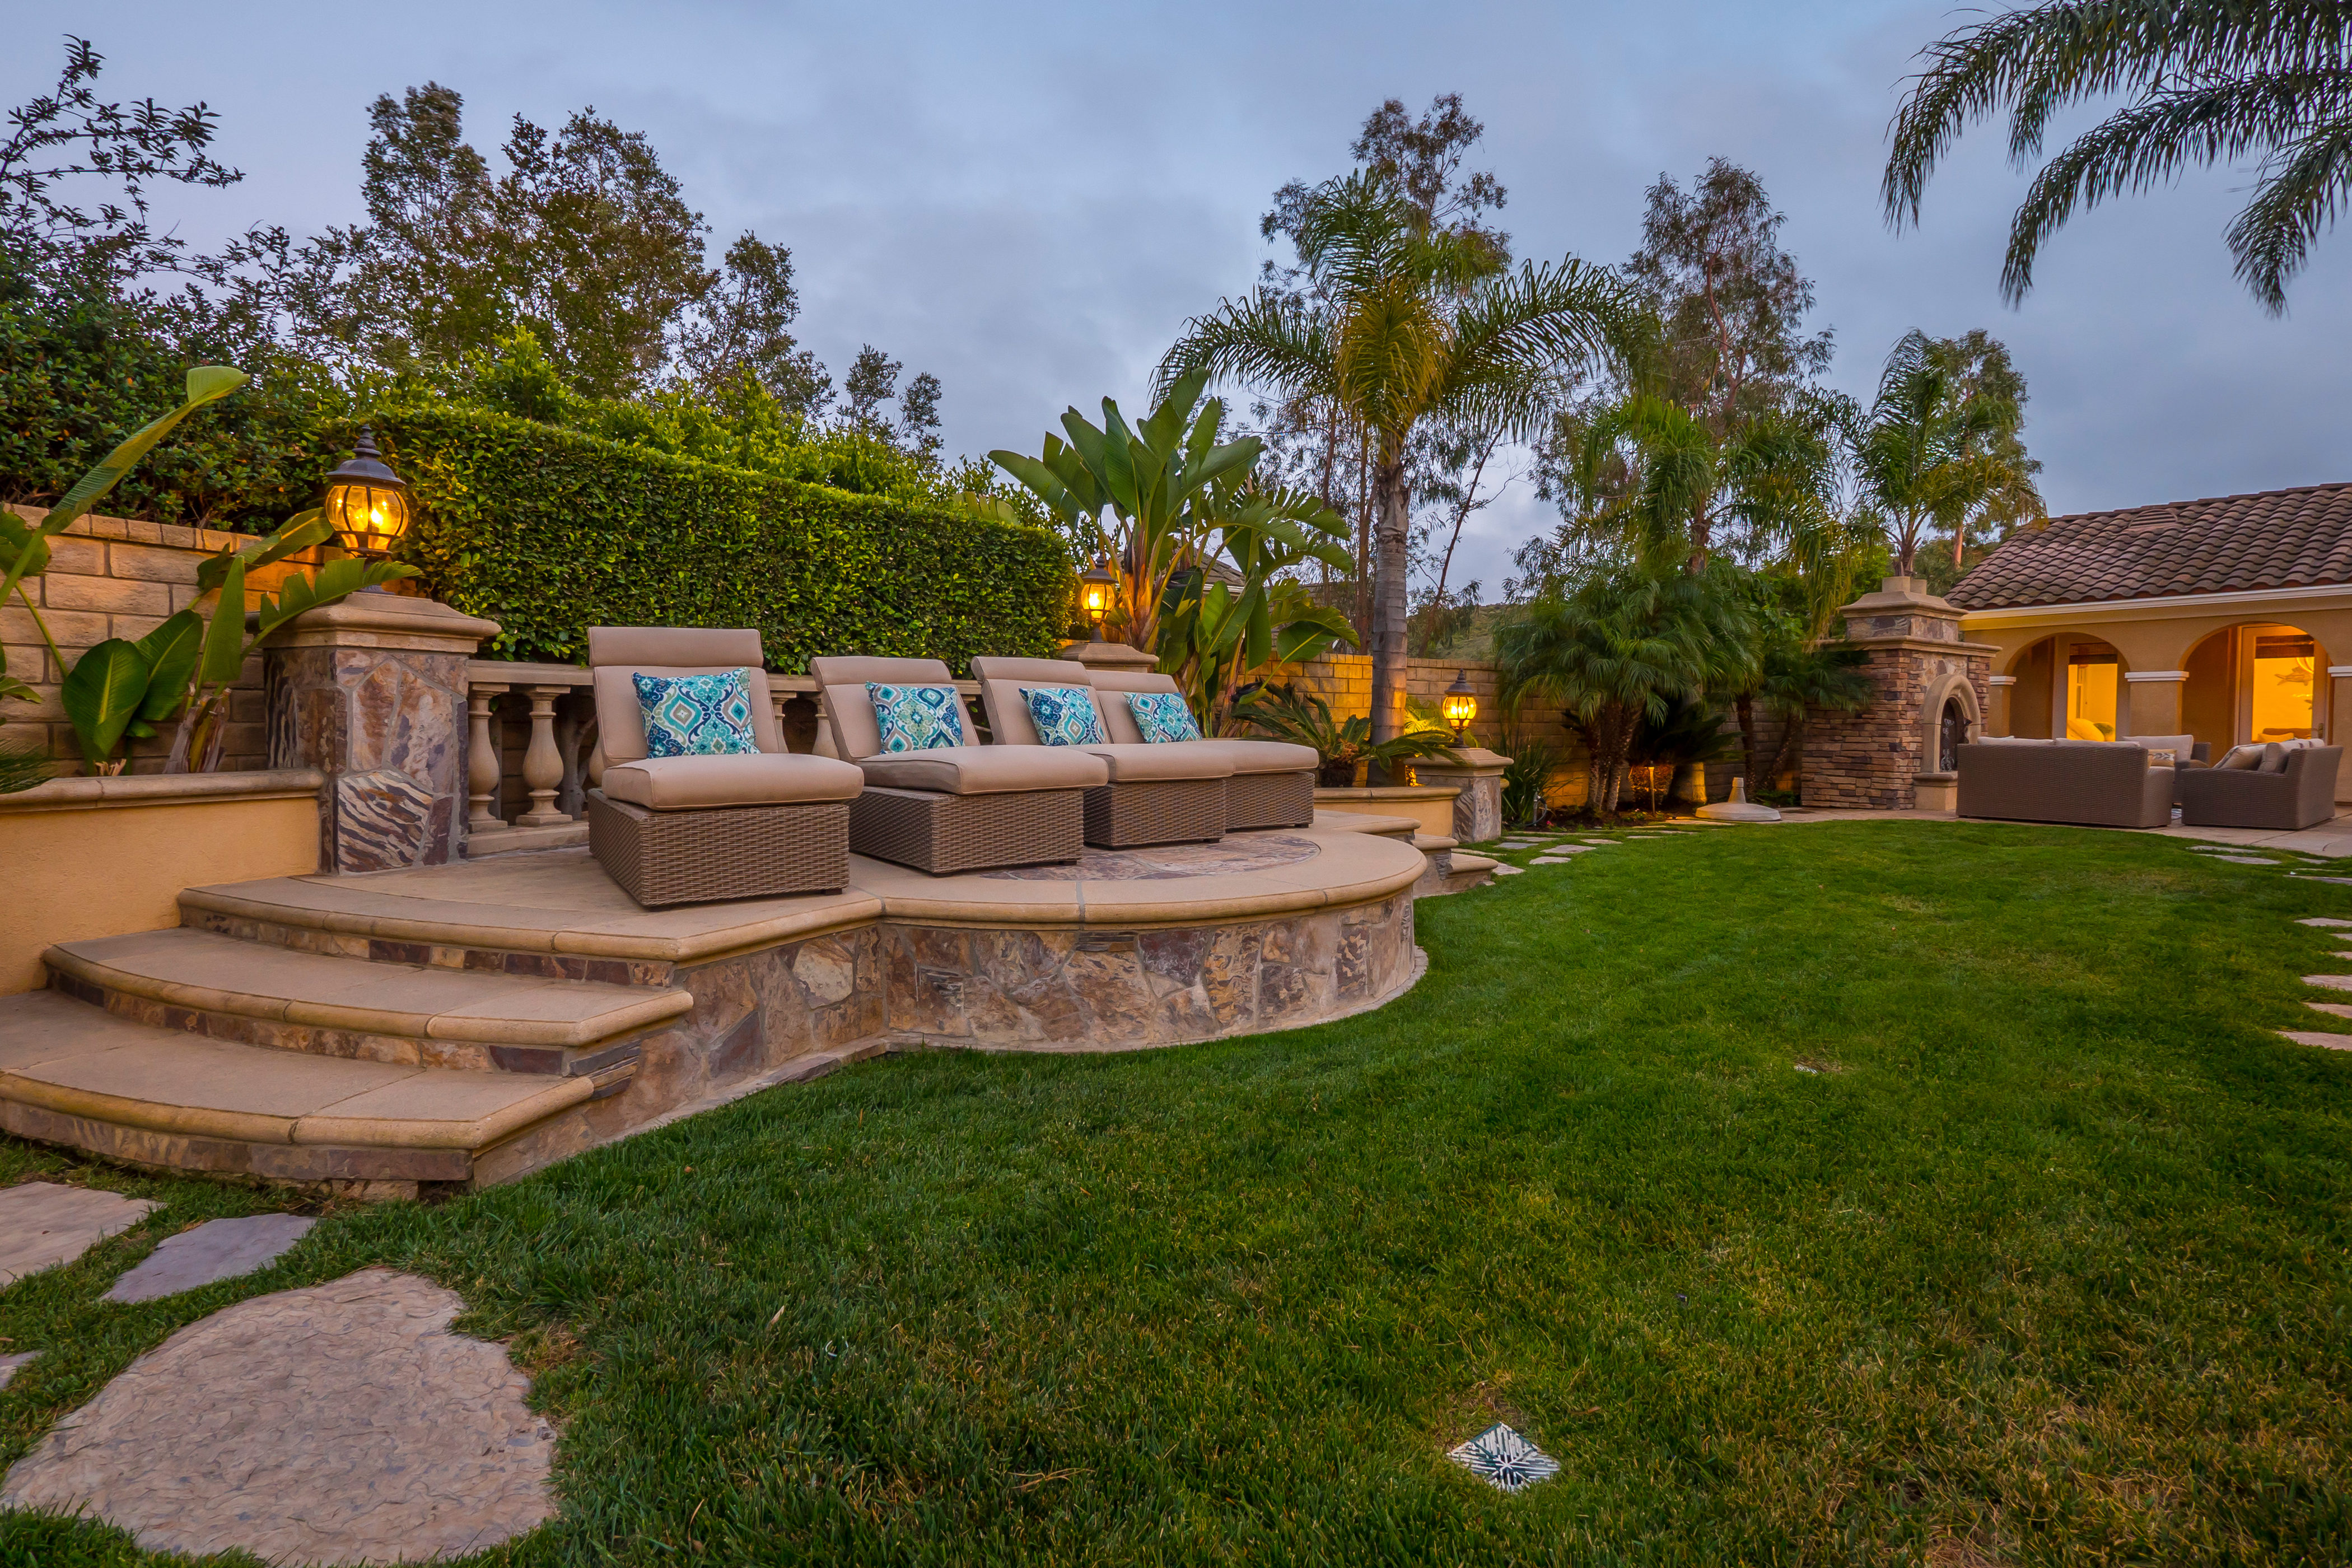 New homes thousand oaks britney spears is selling her for Estate sales thousand oaks